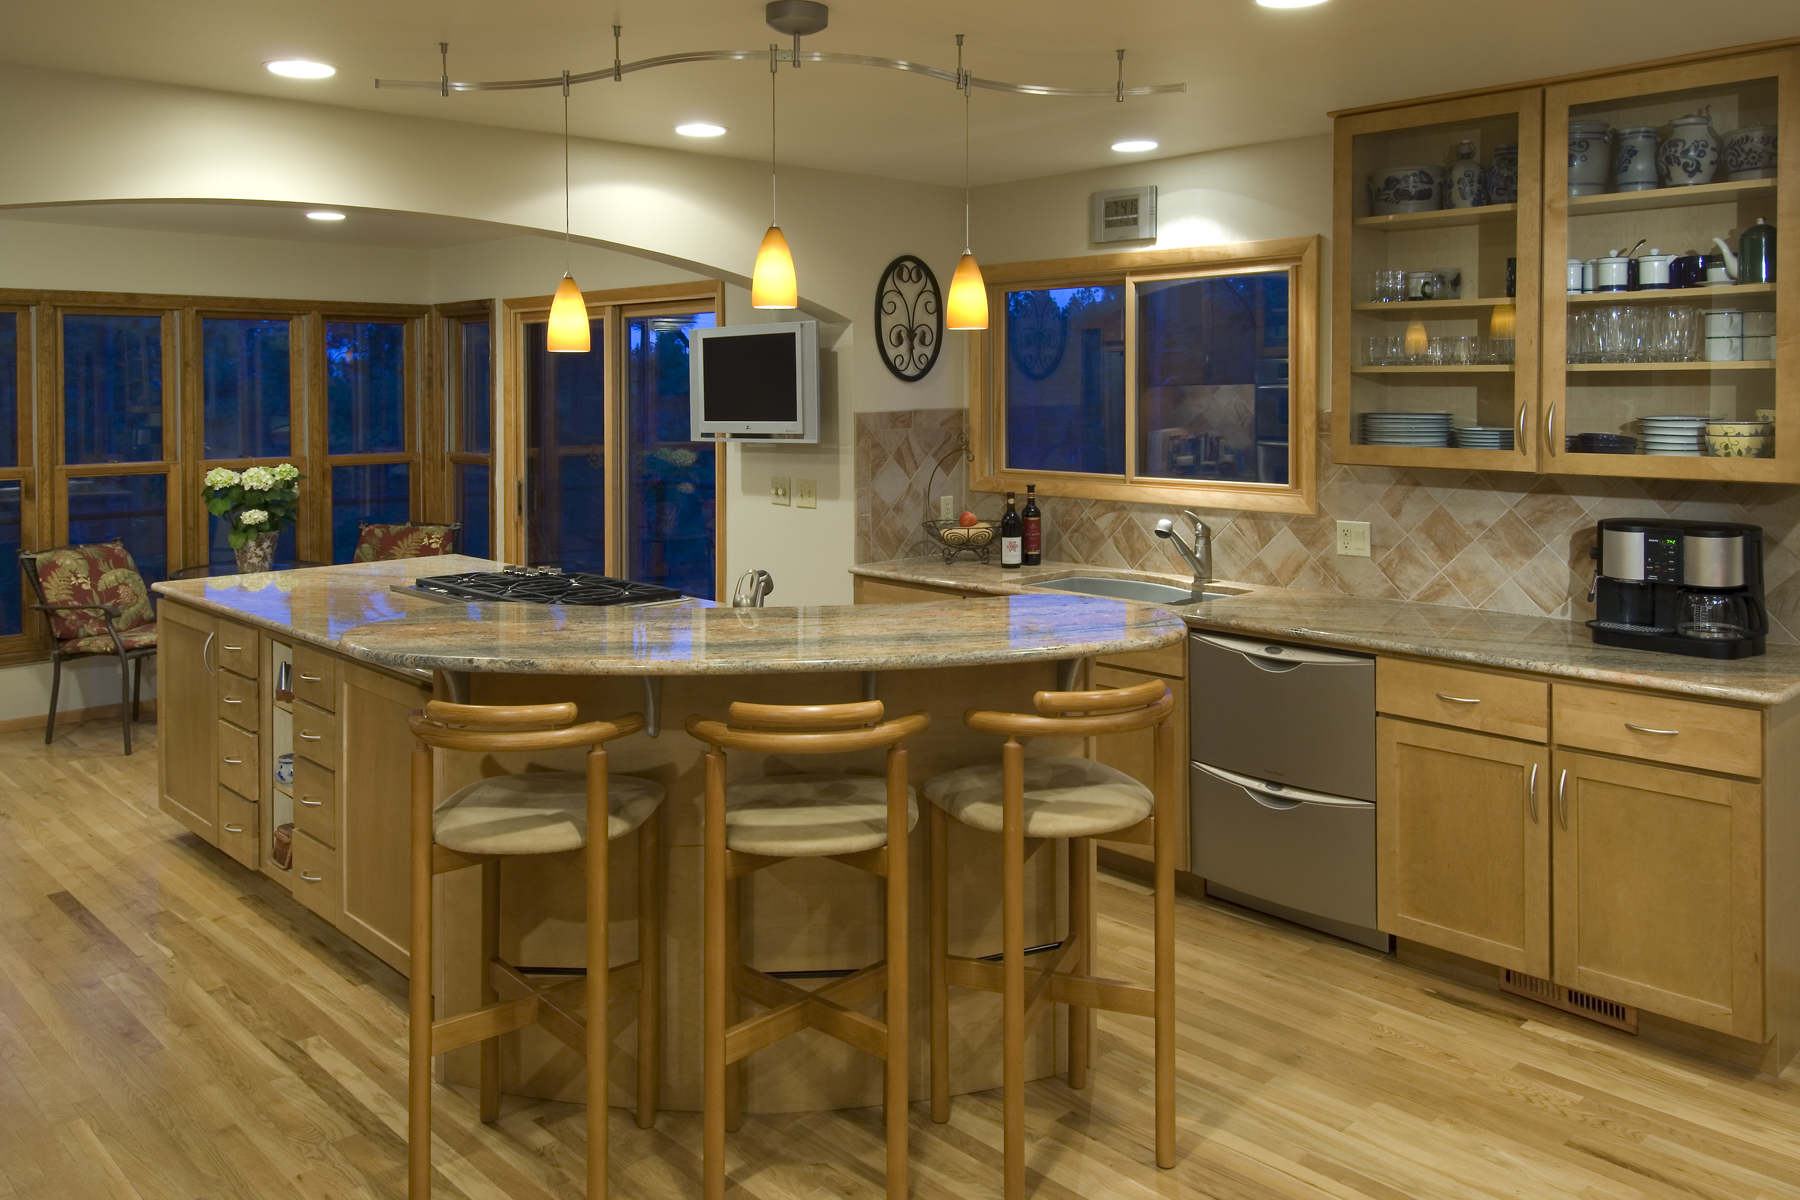 kitchen remodeling colorado springs & Kitchen Remodeling in Colorado Springs CO - Kitchen Design Contractors